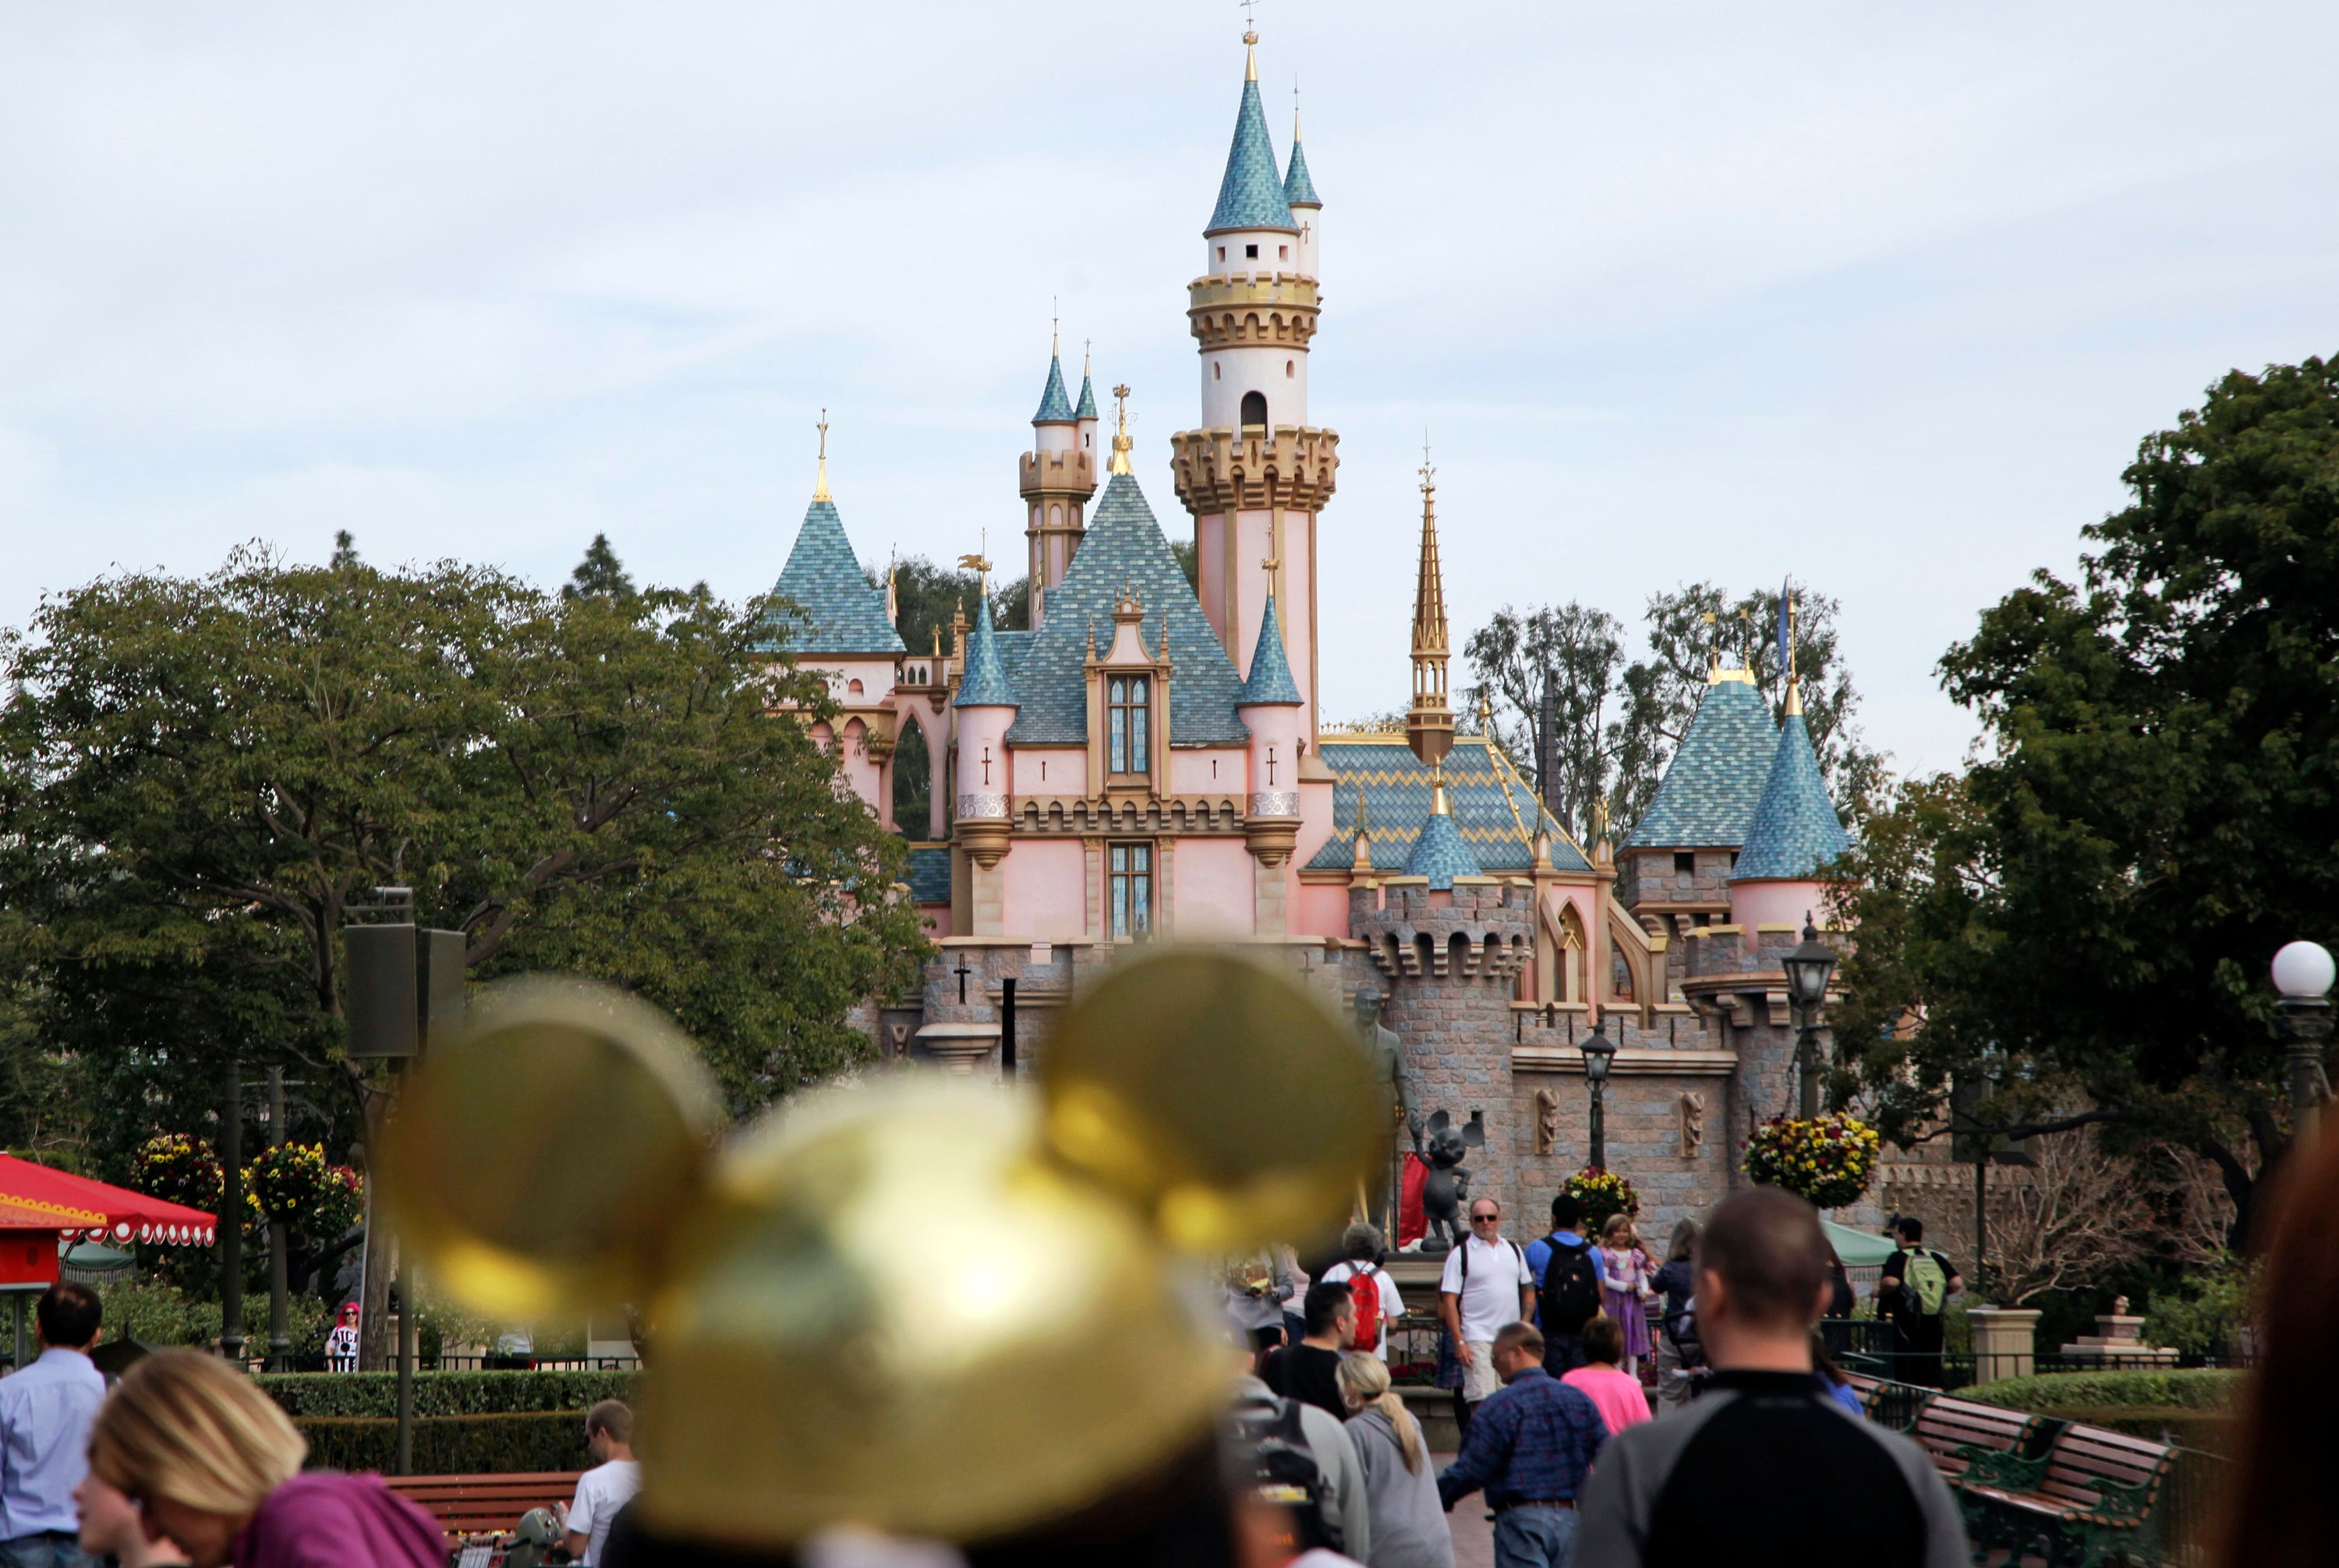 Disneyland's Local Police Force Caught Secretly Using Powerful Phone Spying Tools